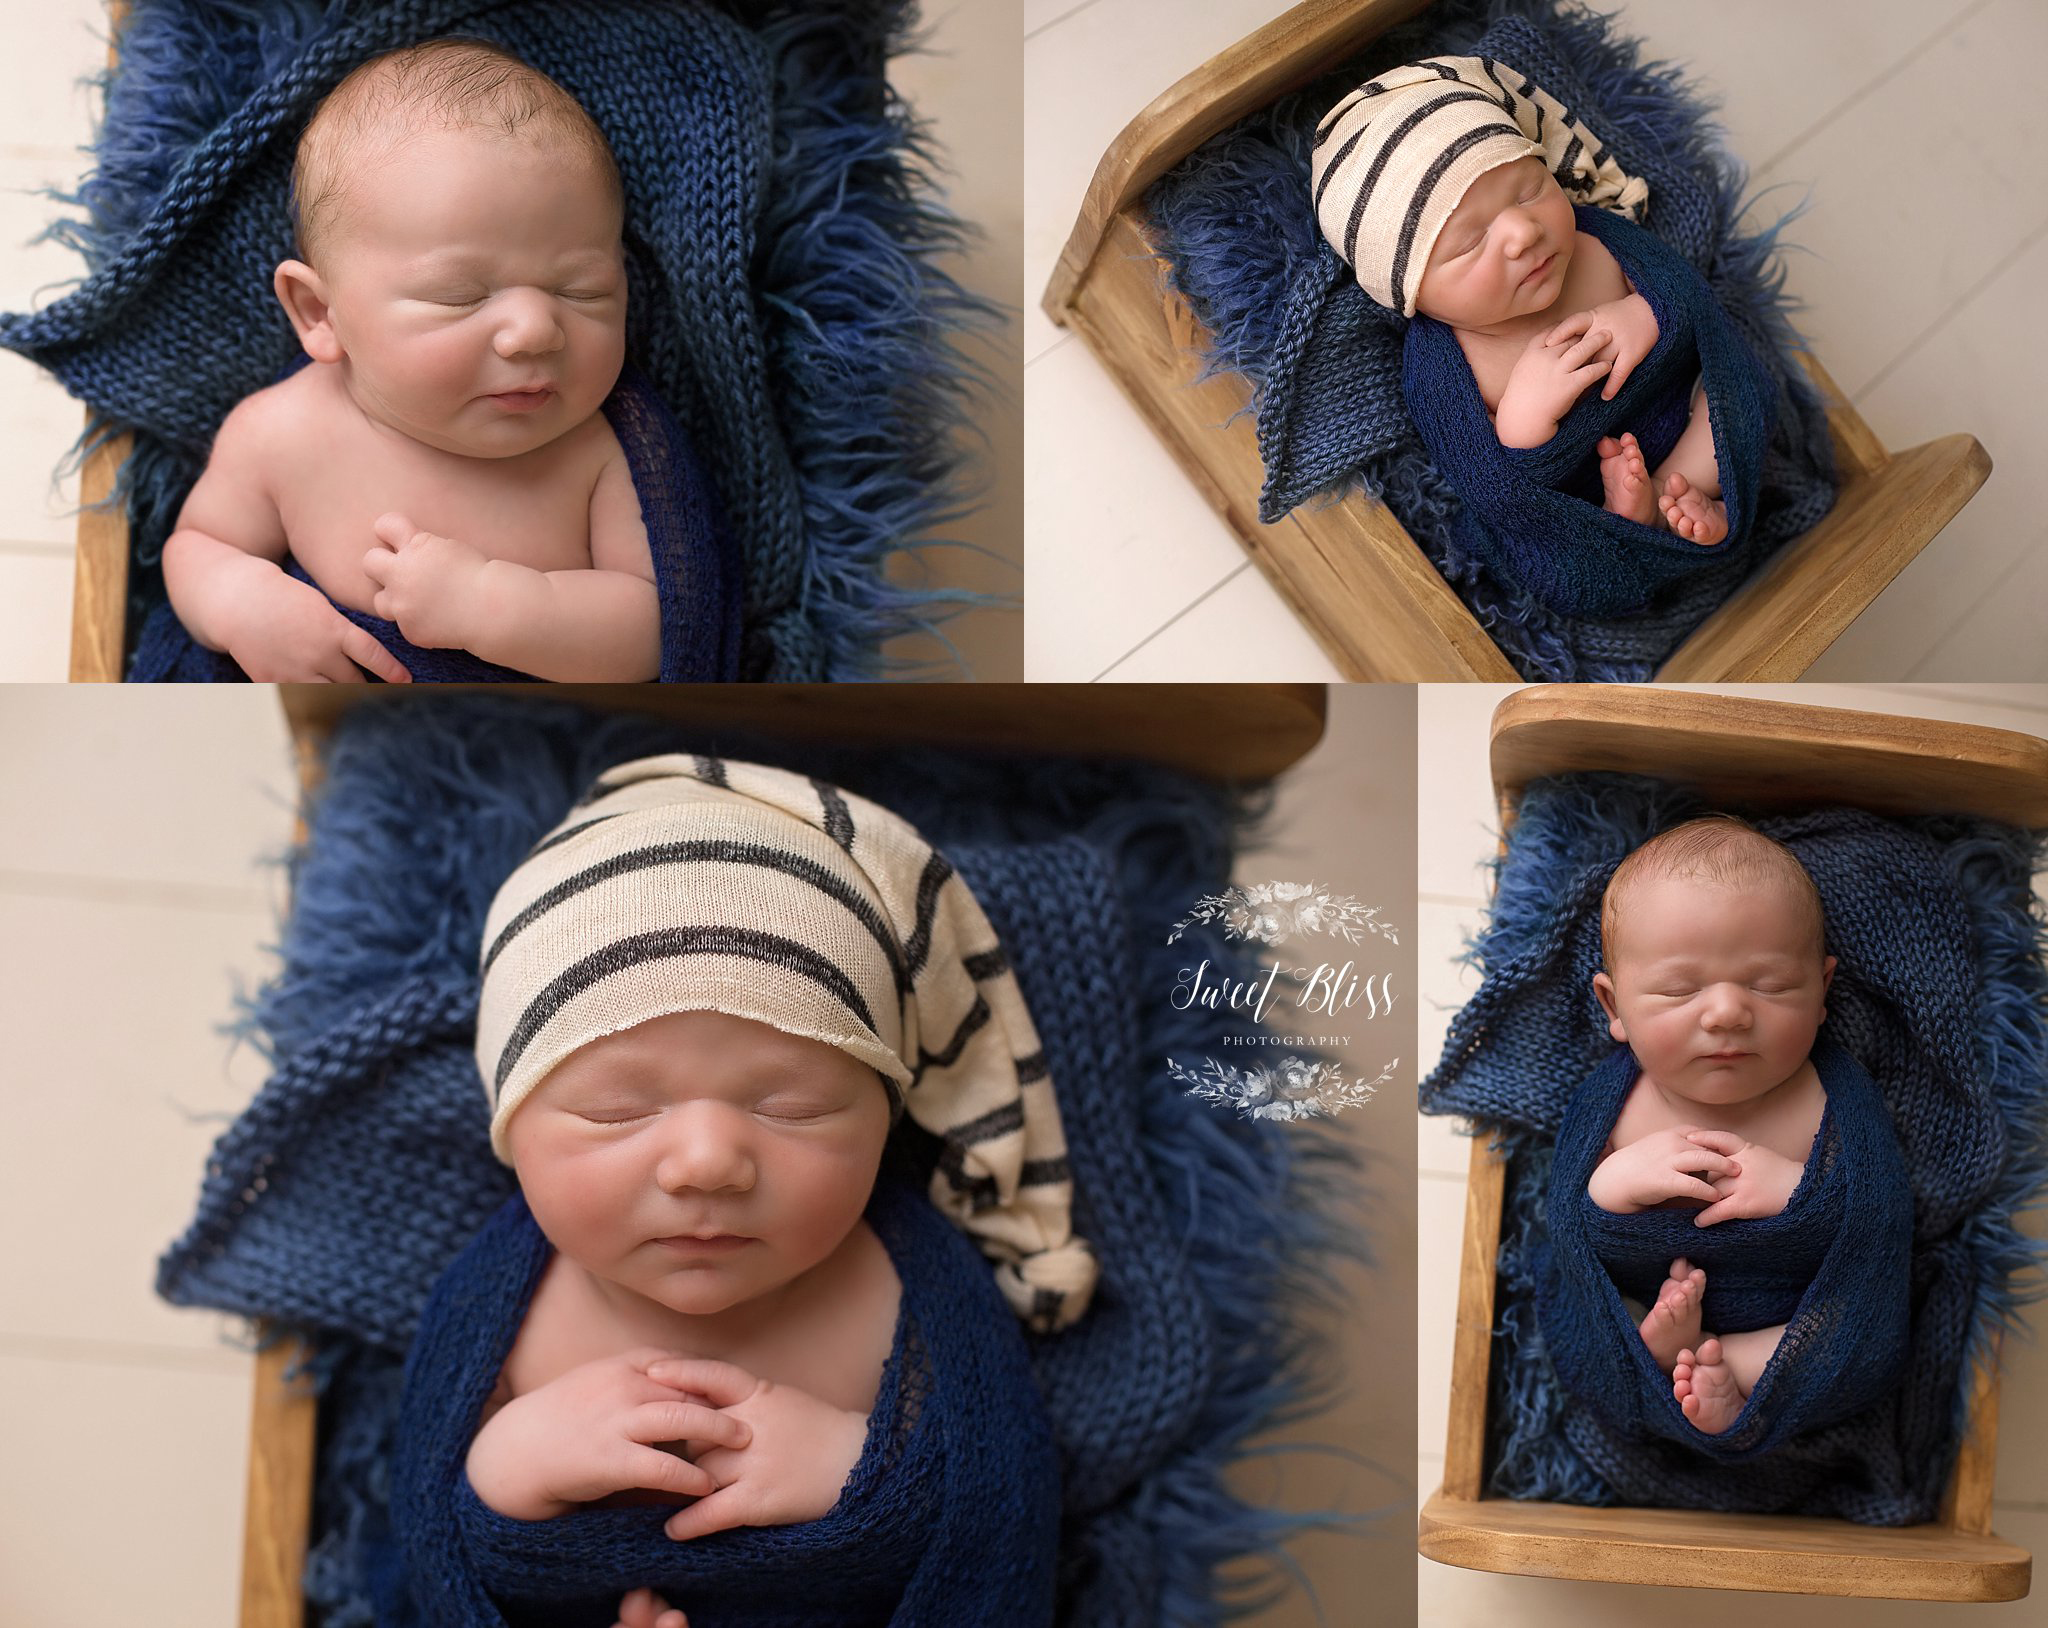 BaltimoreNewbornPhotographer_SweetBlissPhoto_Navyboyphotosession